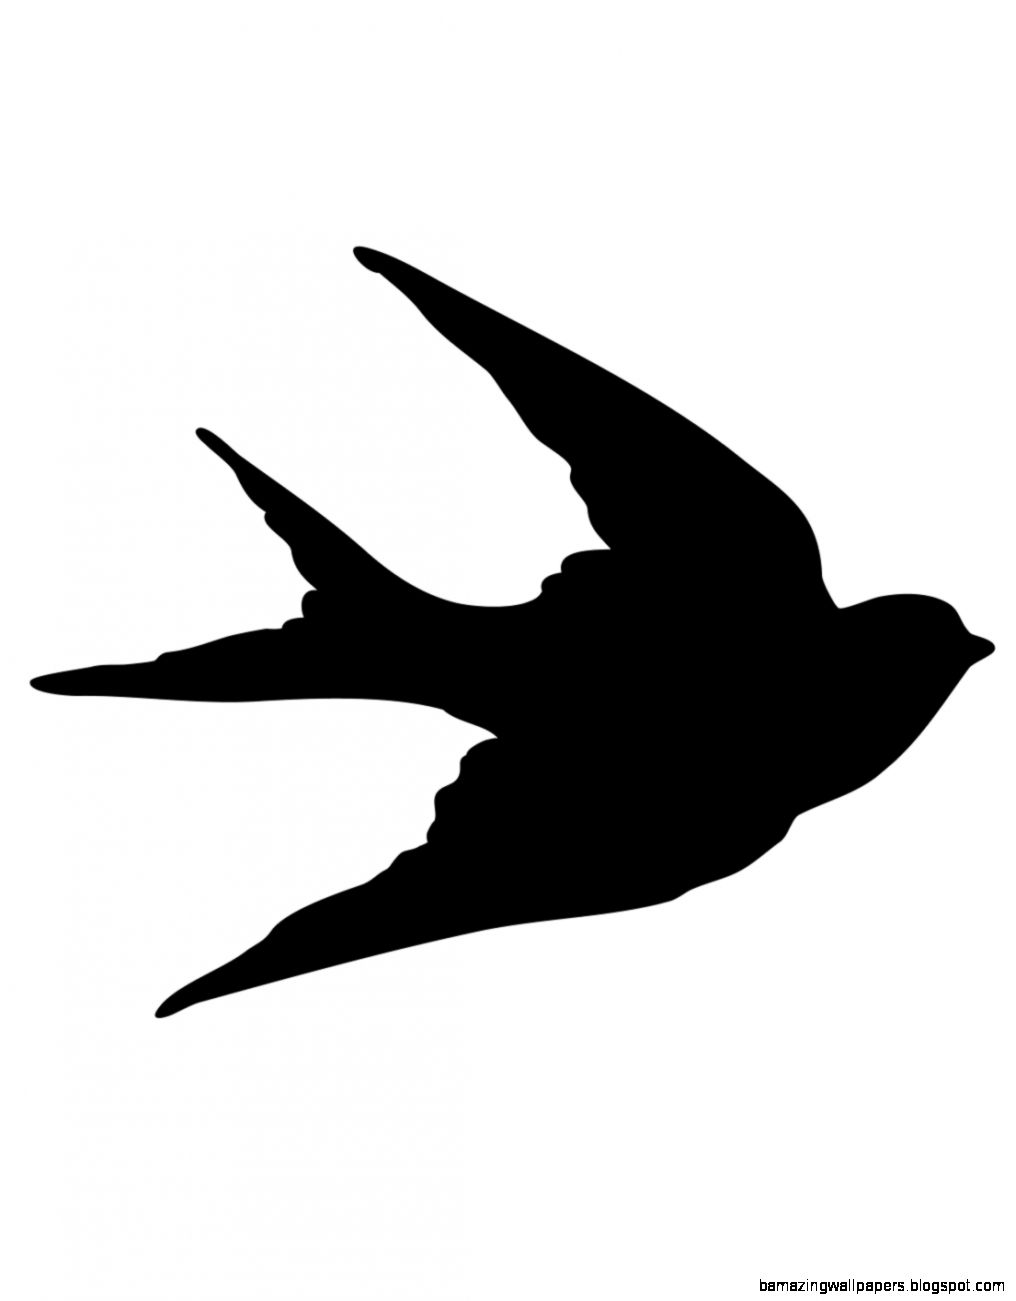 1016x1301 Swallow Silhouette Tattoo Designs